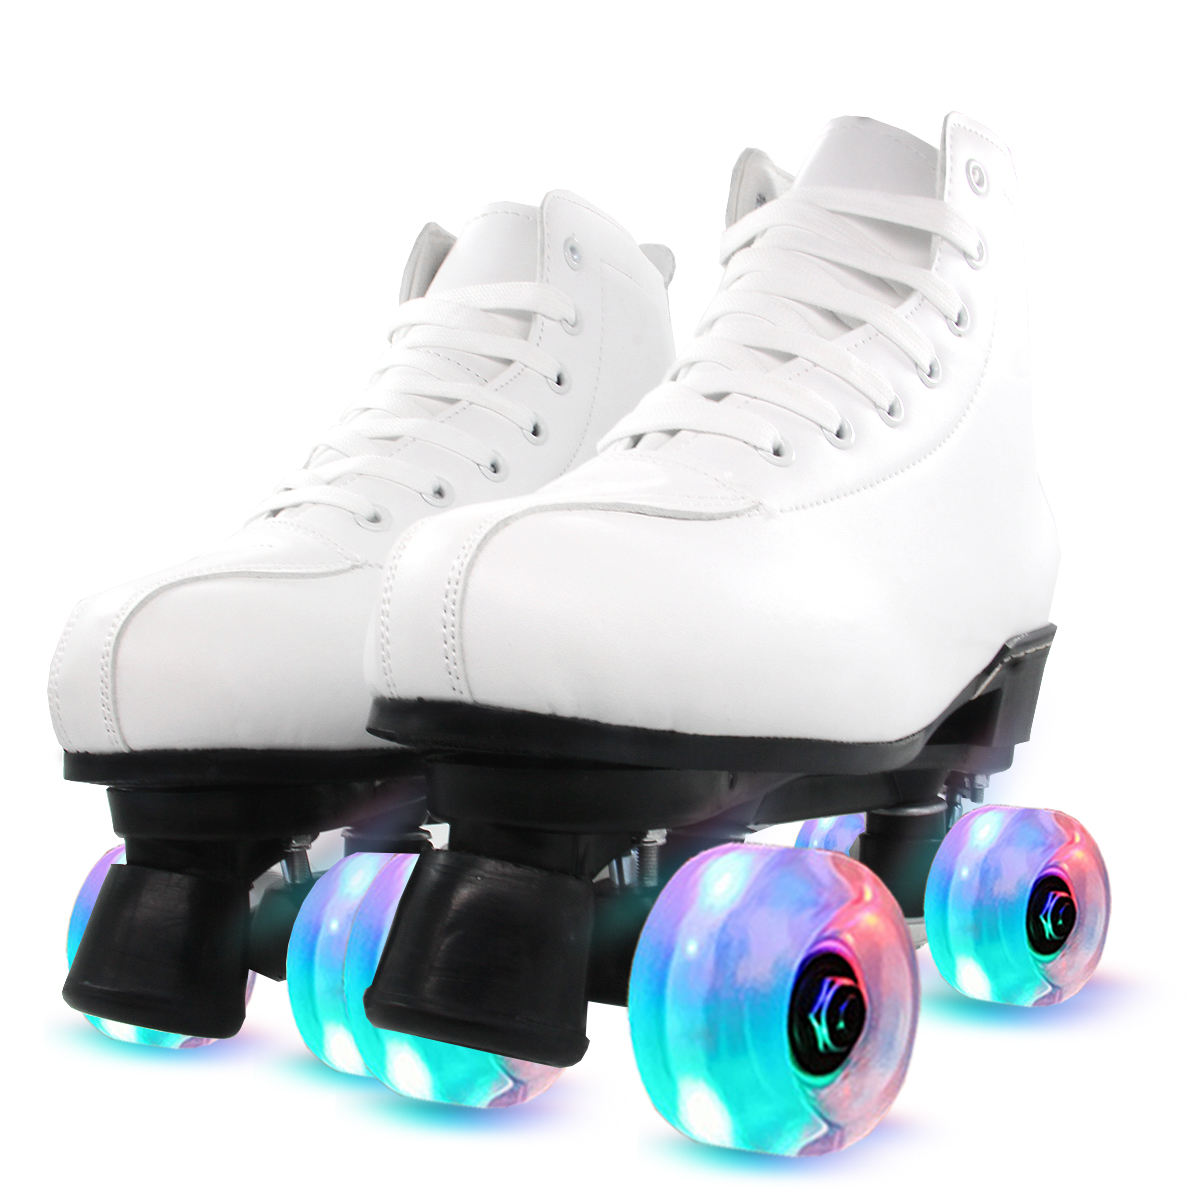 Factory Cheap Price Wholesale 4 Wheels Skate Shoes Outdoor Roller Skates For Adults